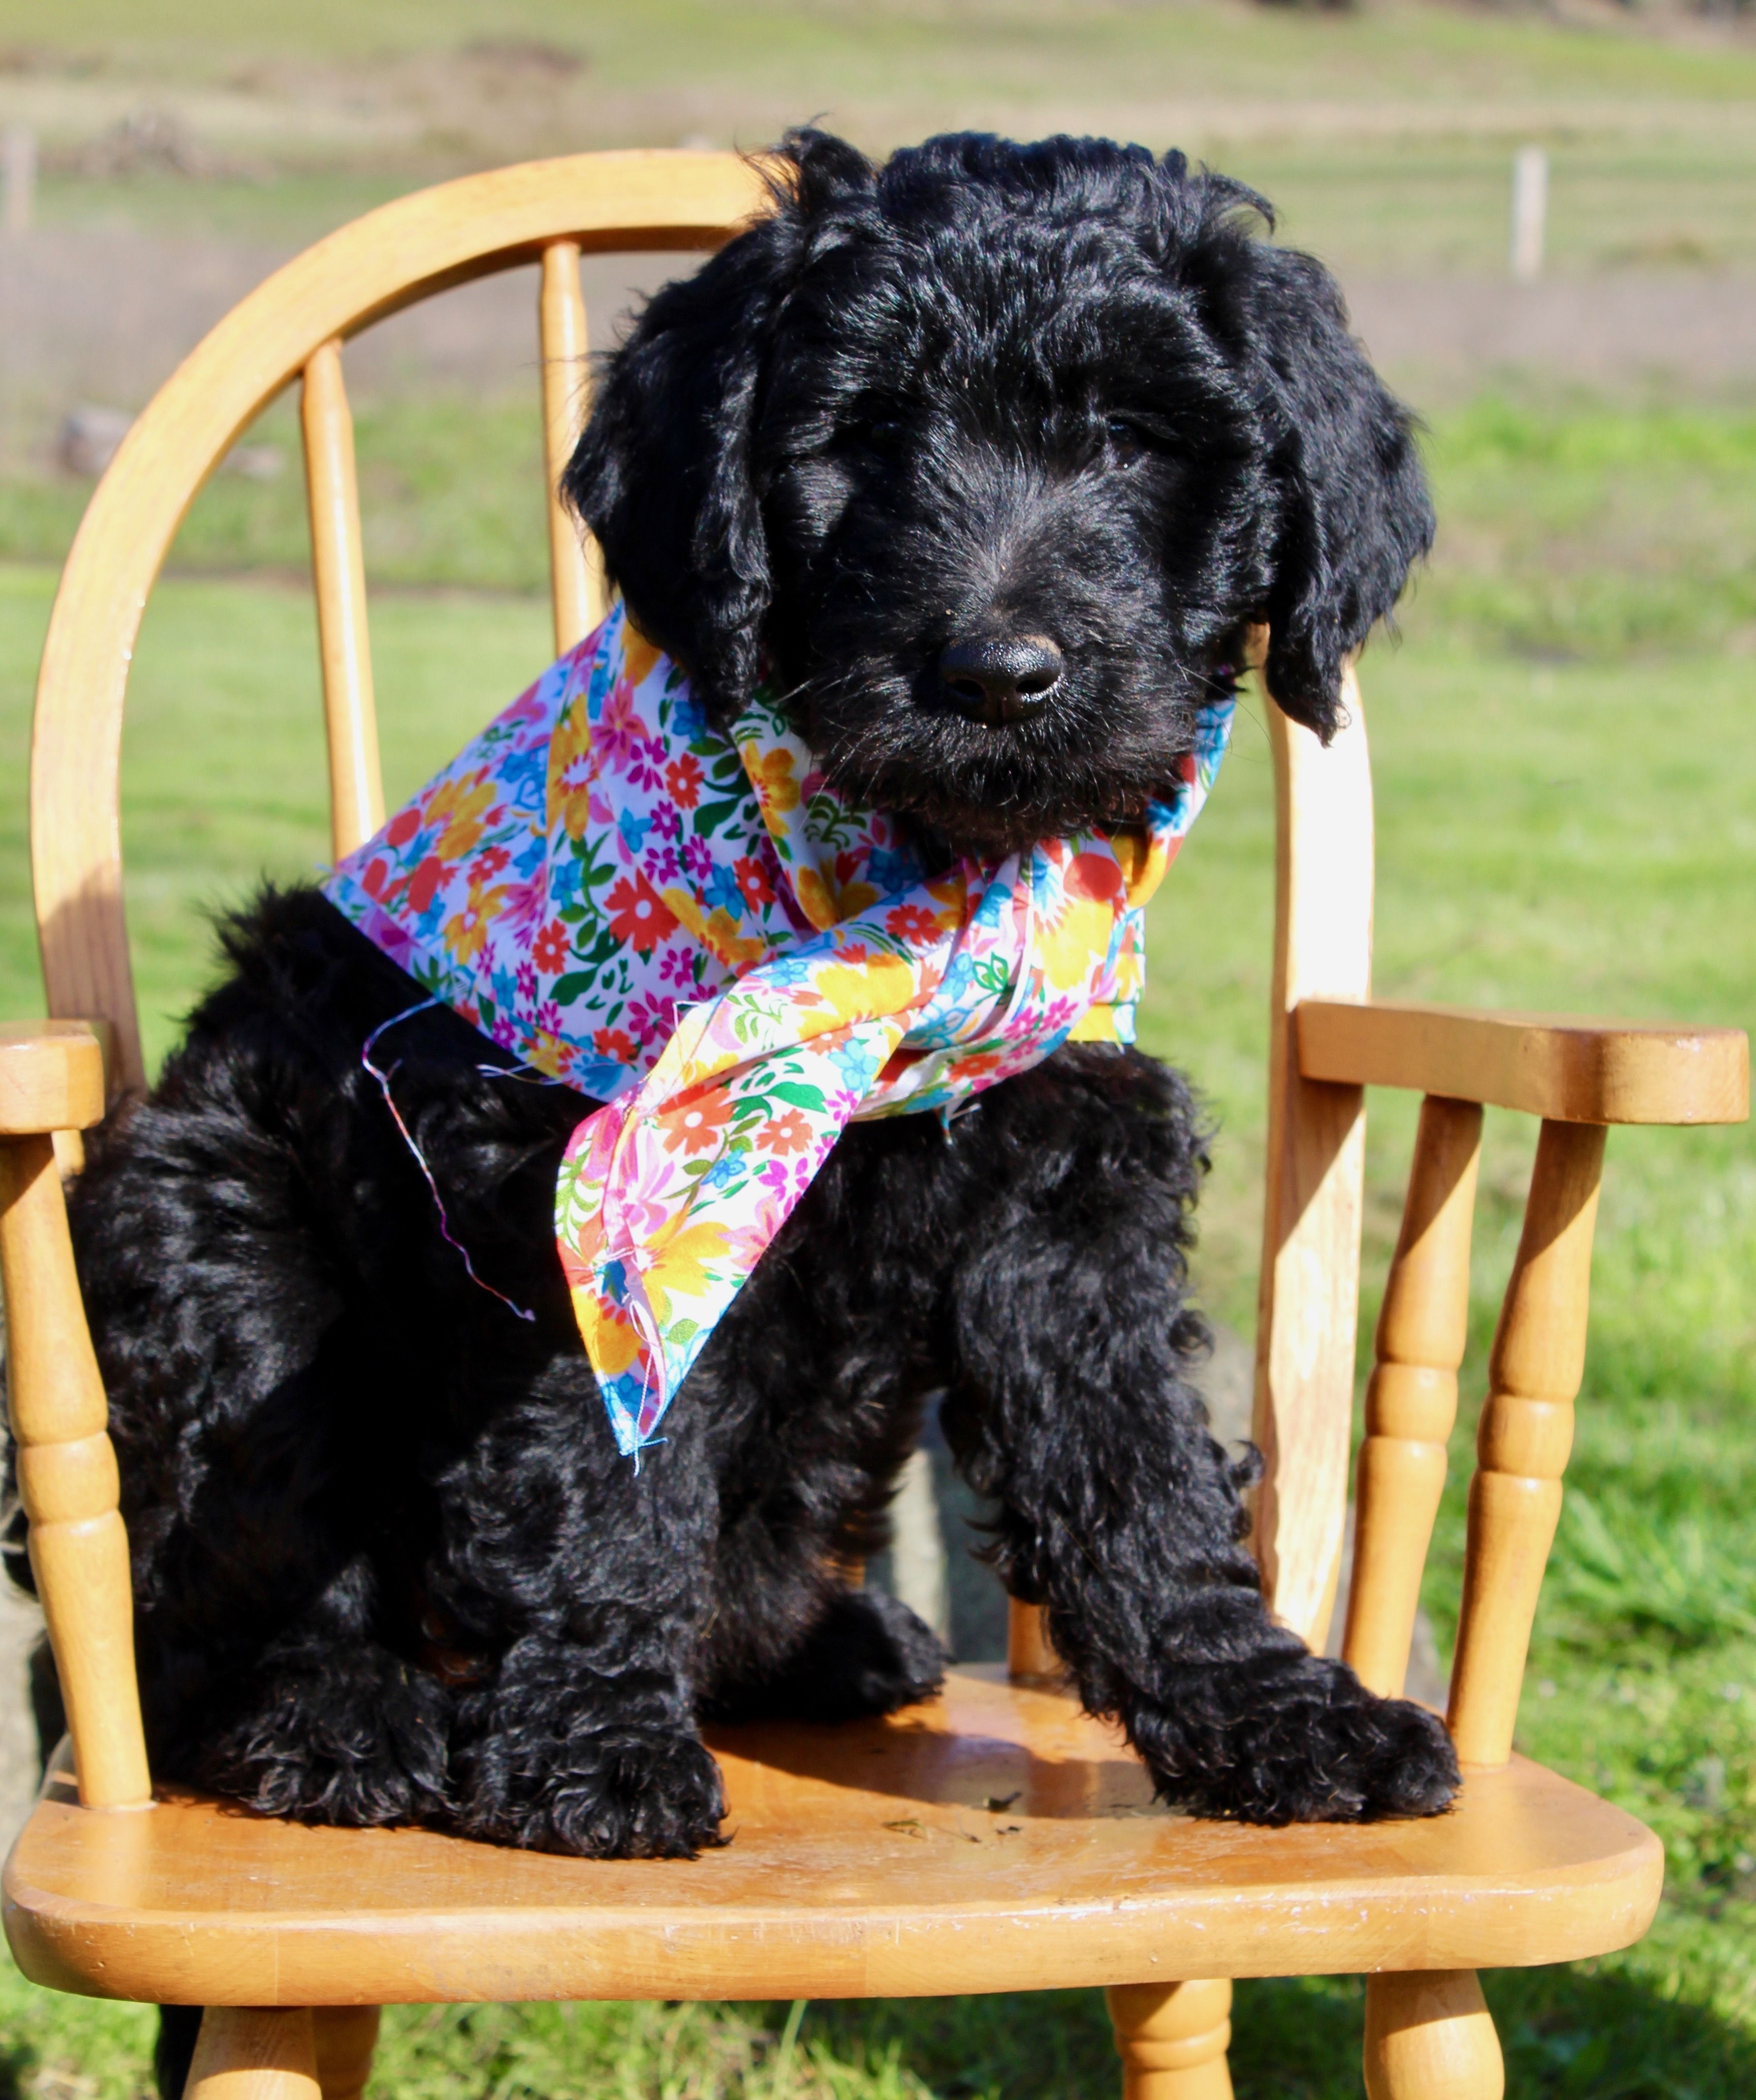 Josie Pye Female Goldendoodle Doggie For Sale At Yoncalla Oregon In 2020 Goldendoodle Goldendoodle Puppy Puppies